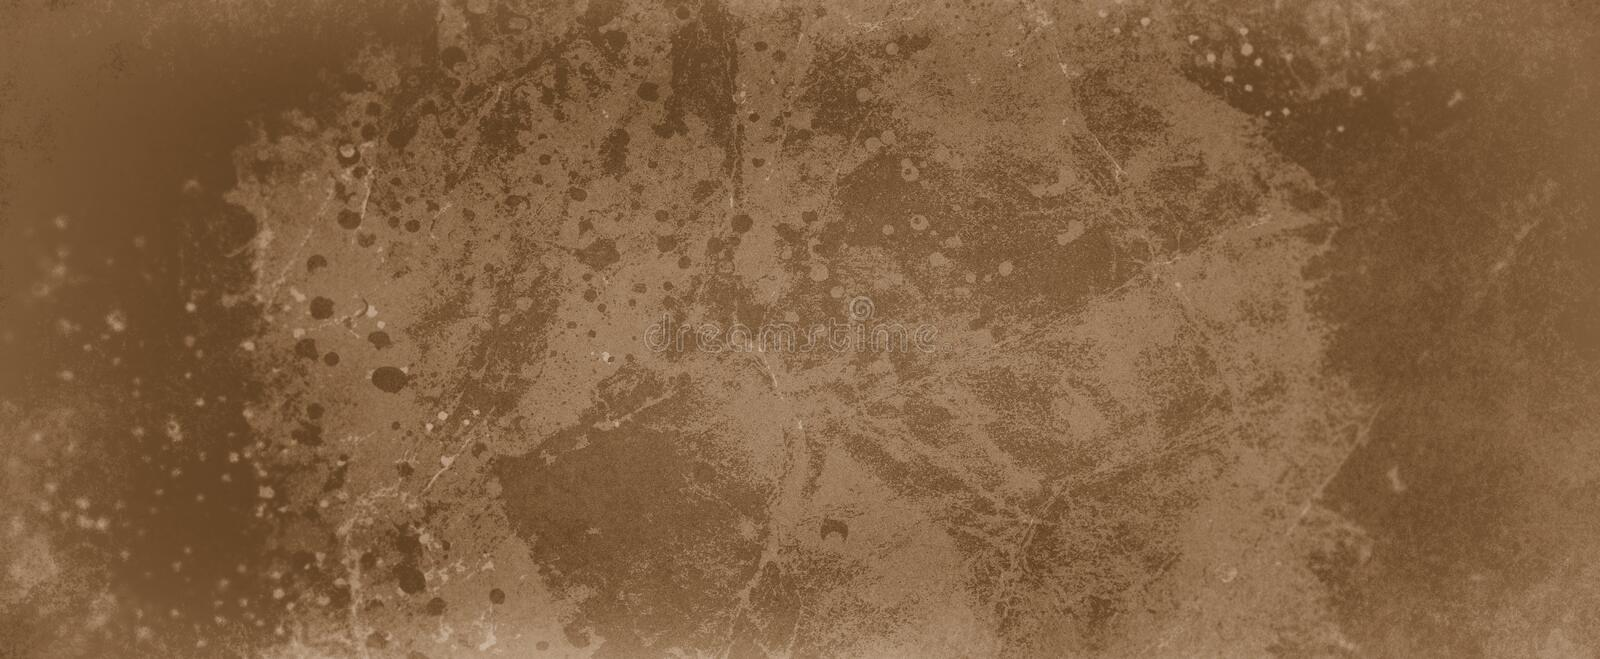 Brown background with light and dark brown coffee color design with paint spatter drips or drops and distressed old grunge texture. Old brown background with royalty free illustration